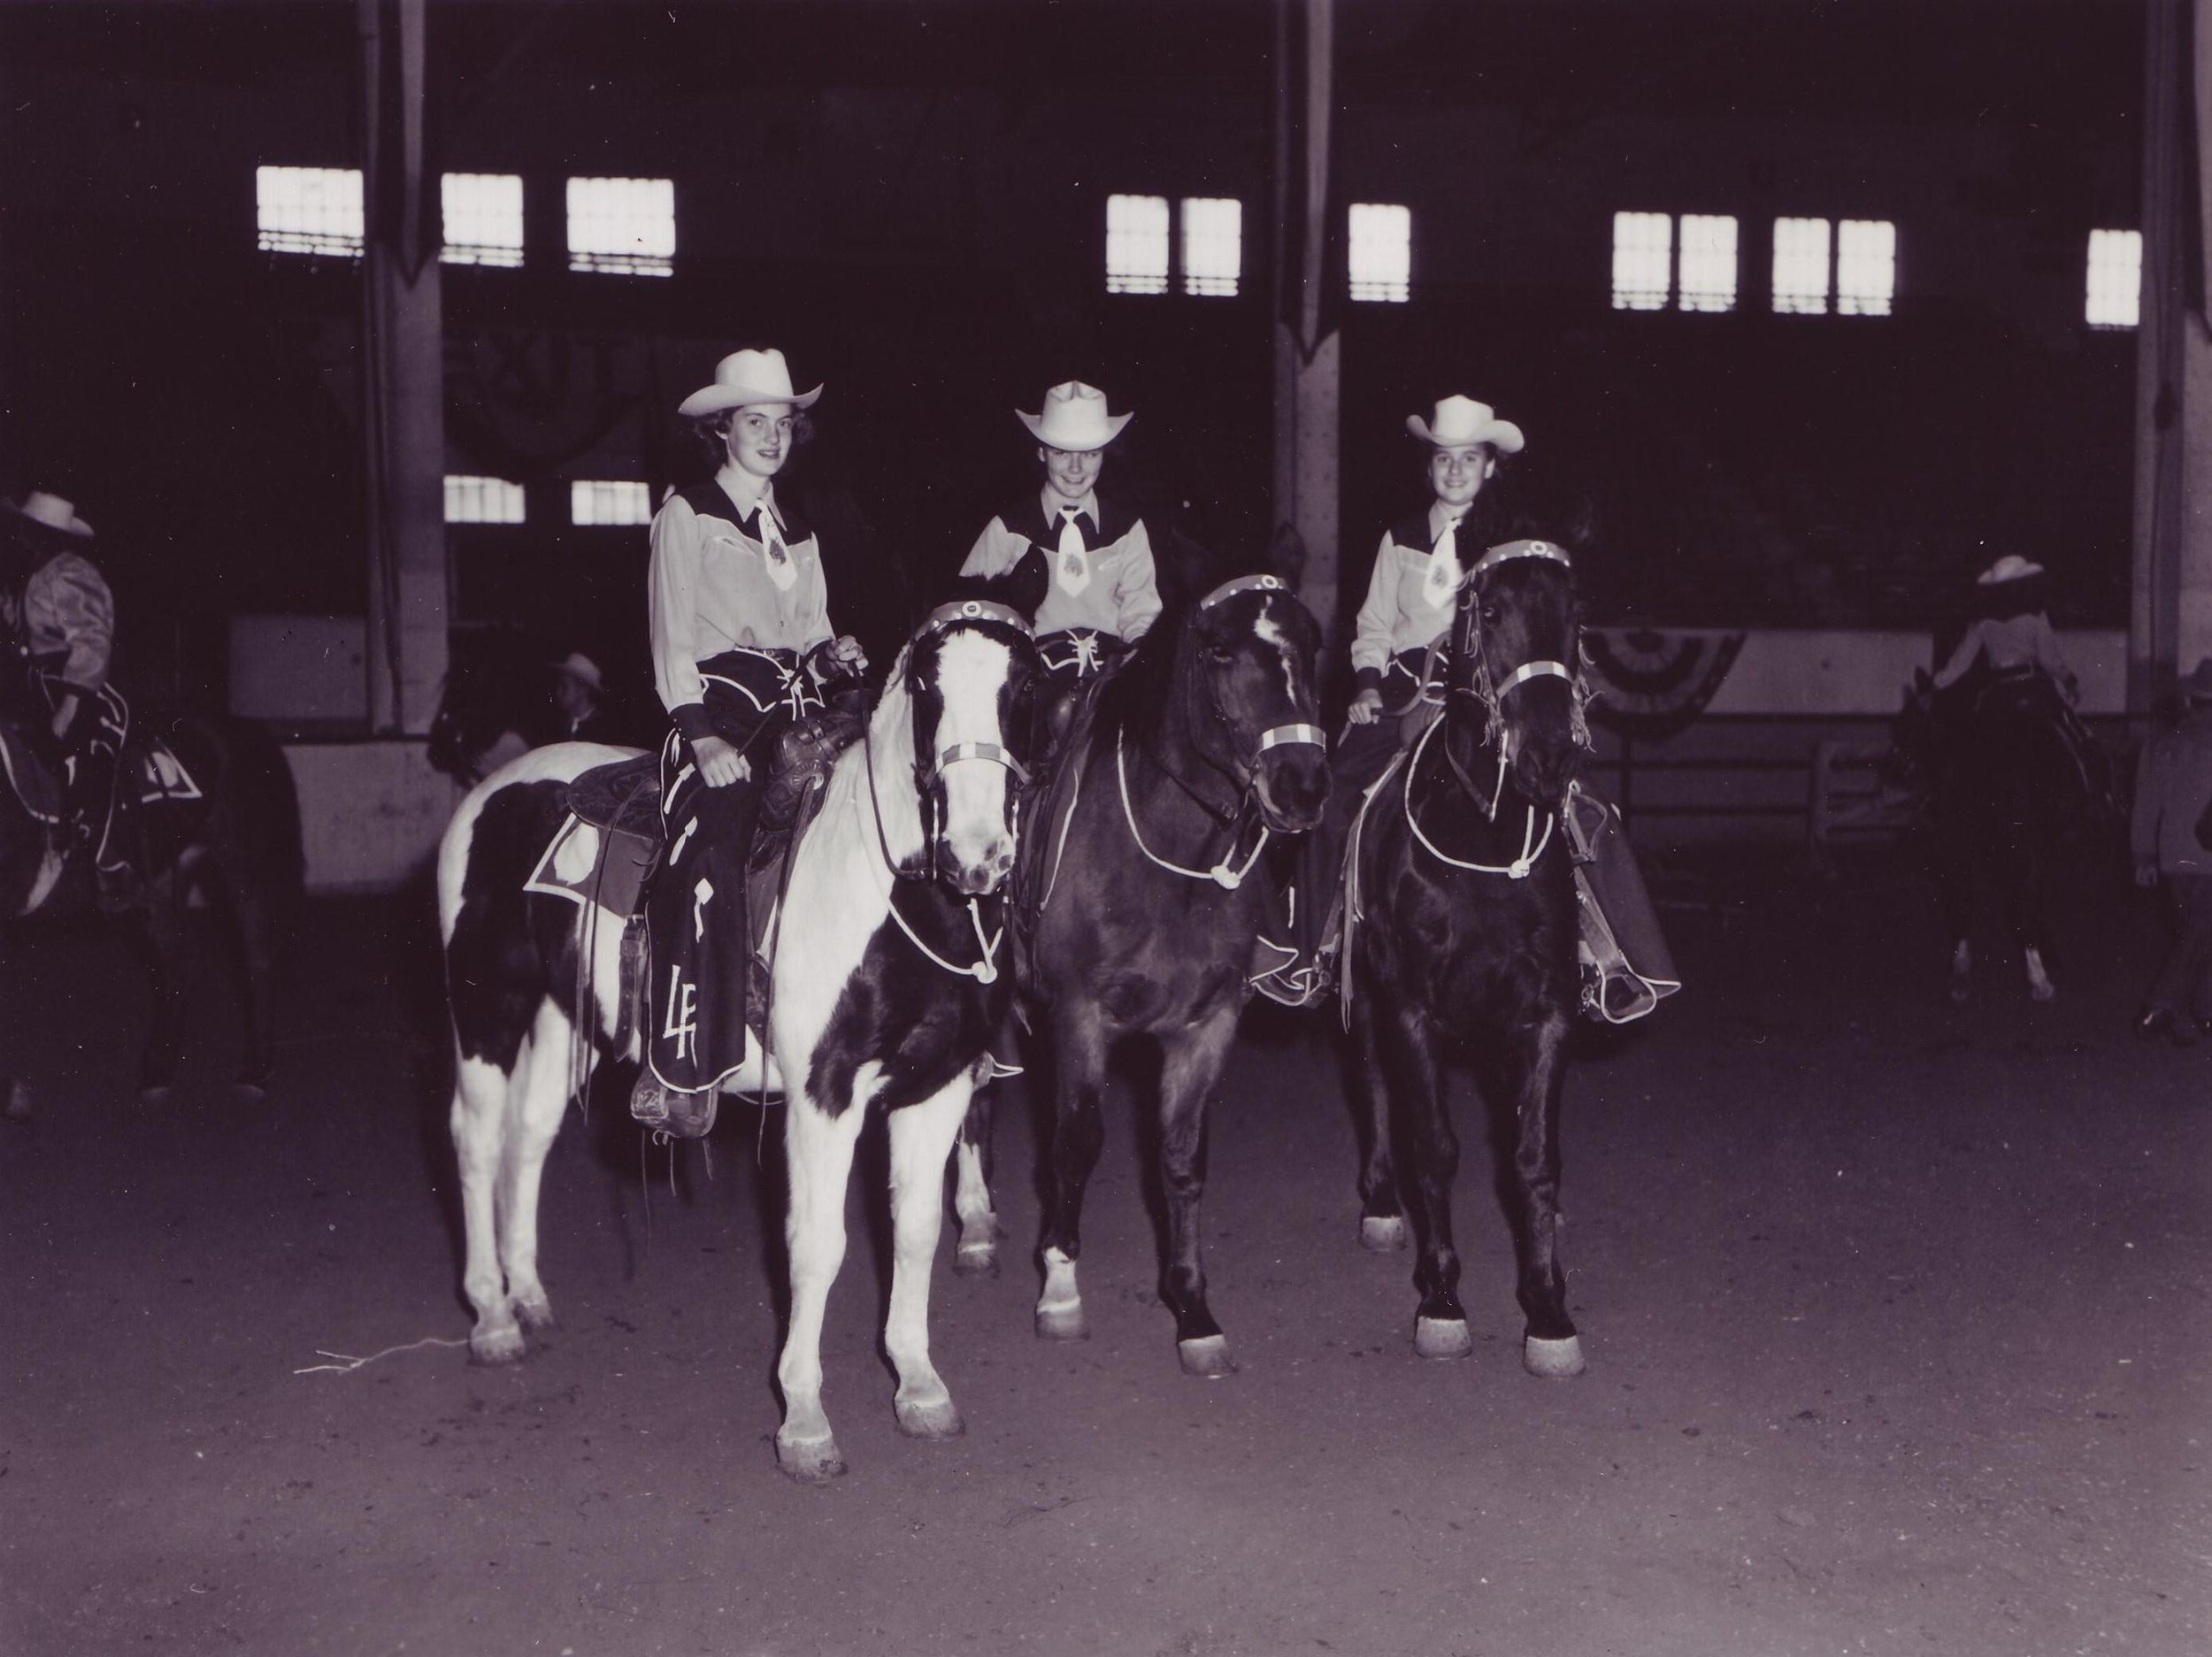 Warm-up before or cool-down after the 1952 debut appearance of Westernaires at National Western Stock Show